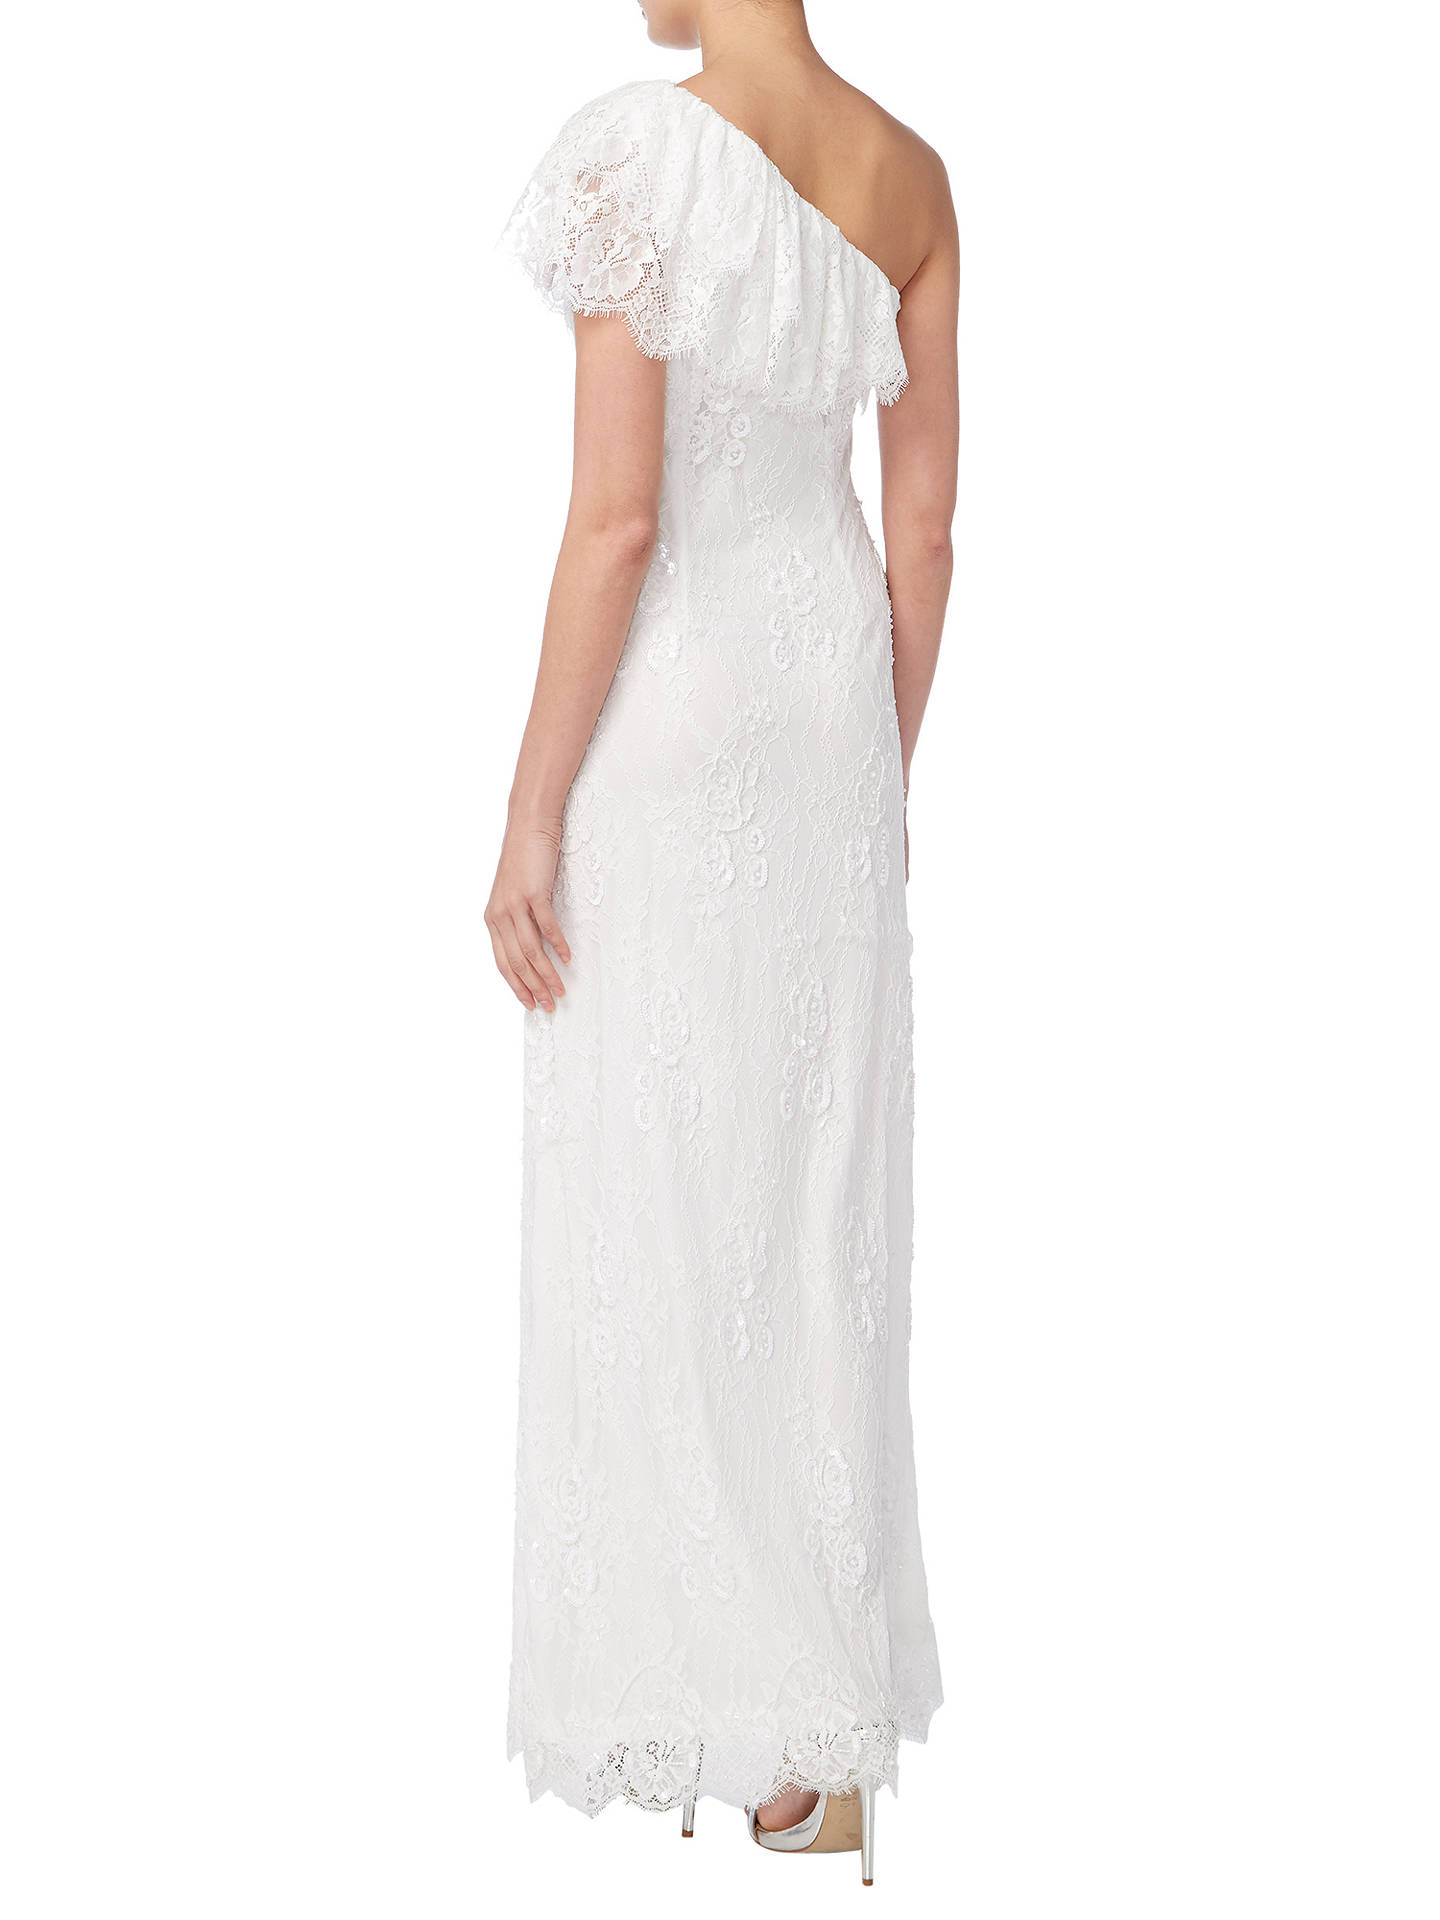 Buy Raishma One Shoulder Beaded Bridal Gown, Ivory, 8 Online at johnlewis.com